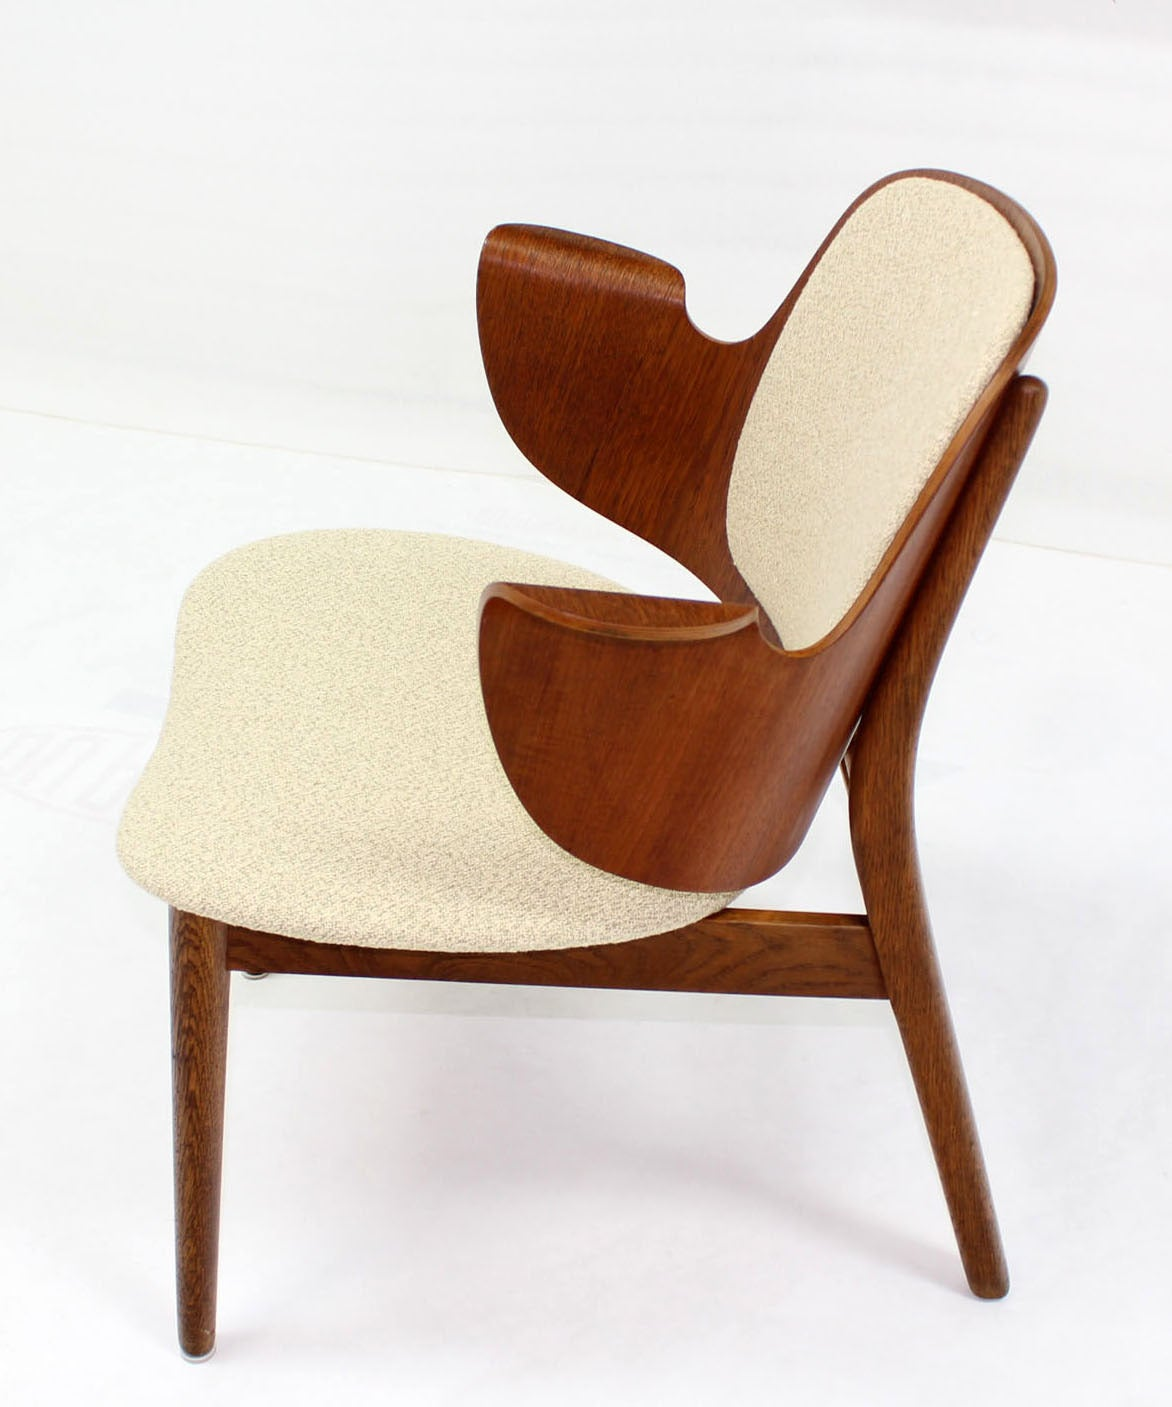 Lacquered Mid-Century Modern Molded Plywood Barrel Back Armchair New Upholstery. For Sale